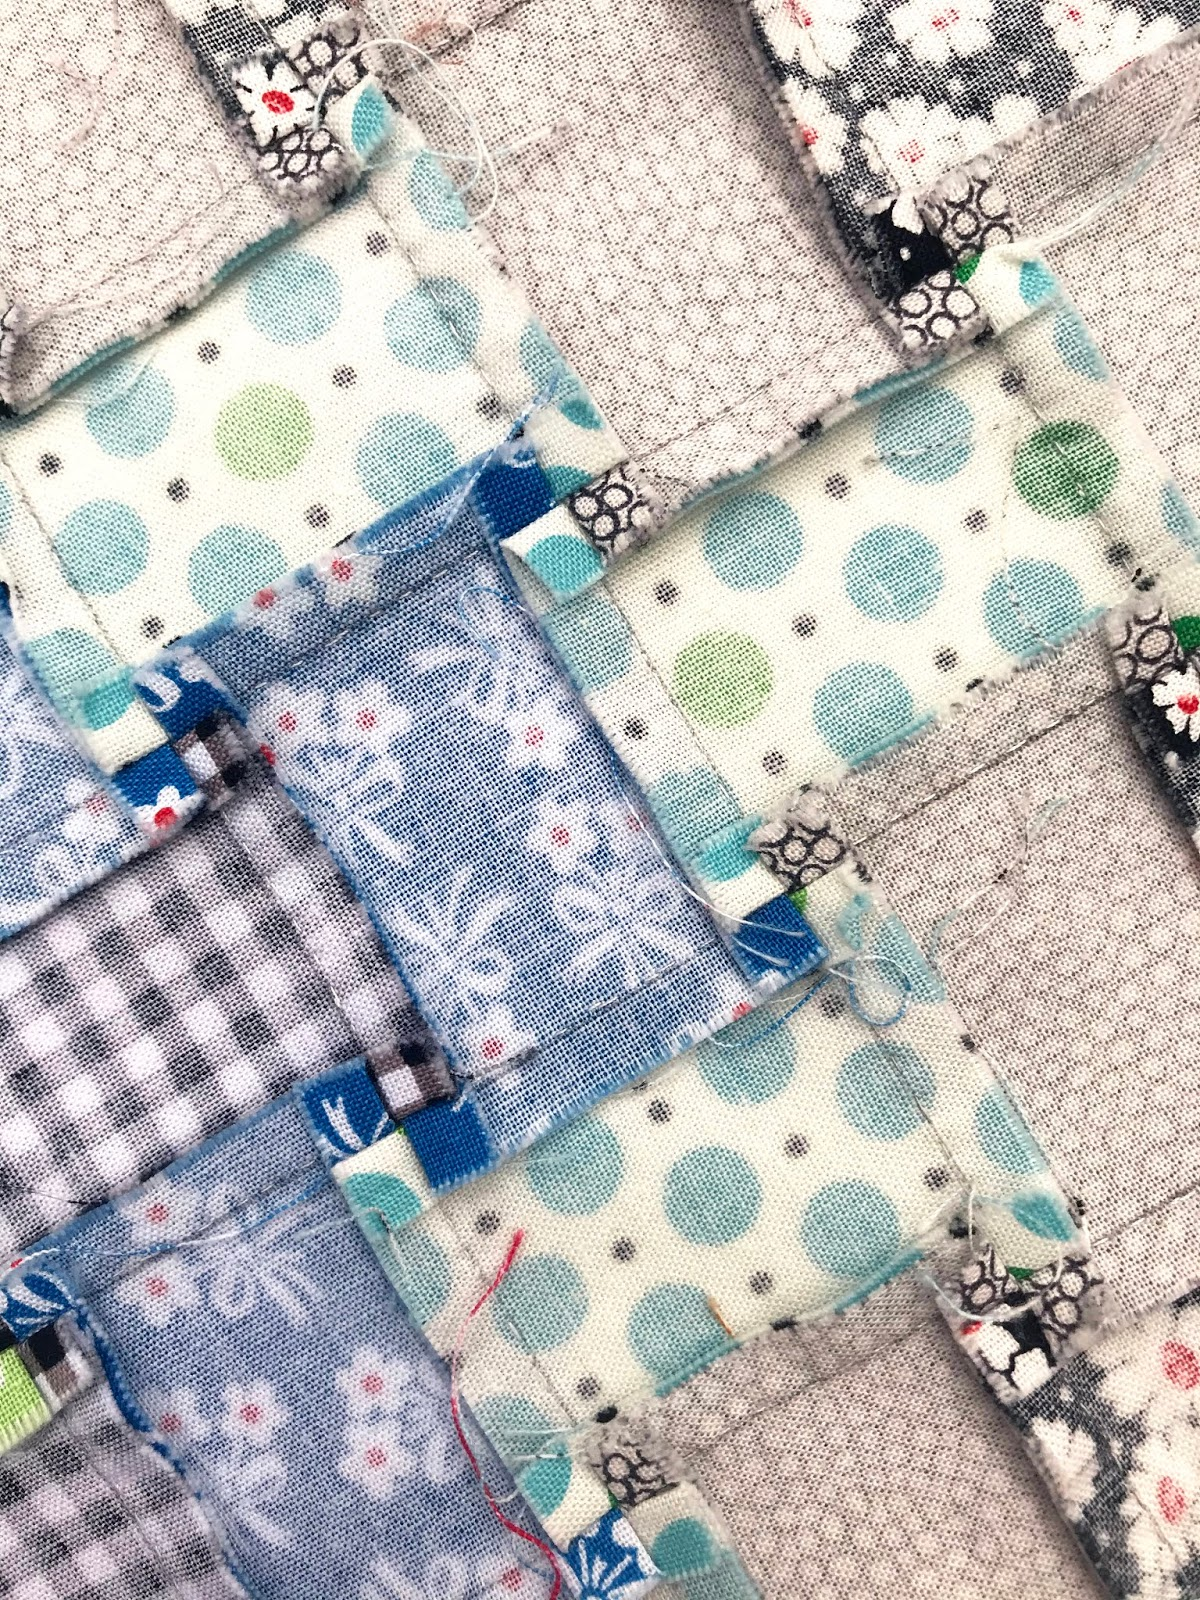 A Hand Pieced Trip Around the World Quilt  - stitching, seams, and pressing   © Red Pepper Quilts 2020